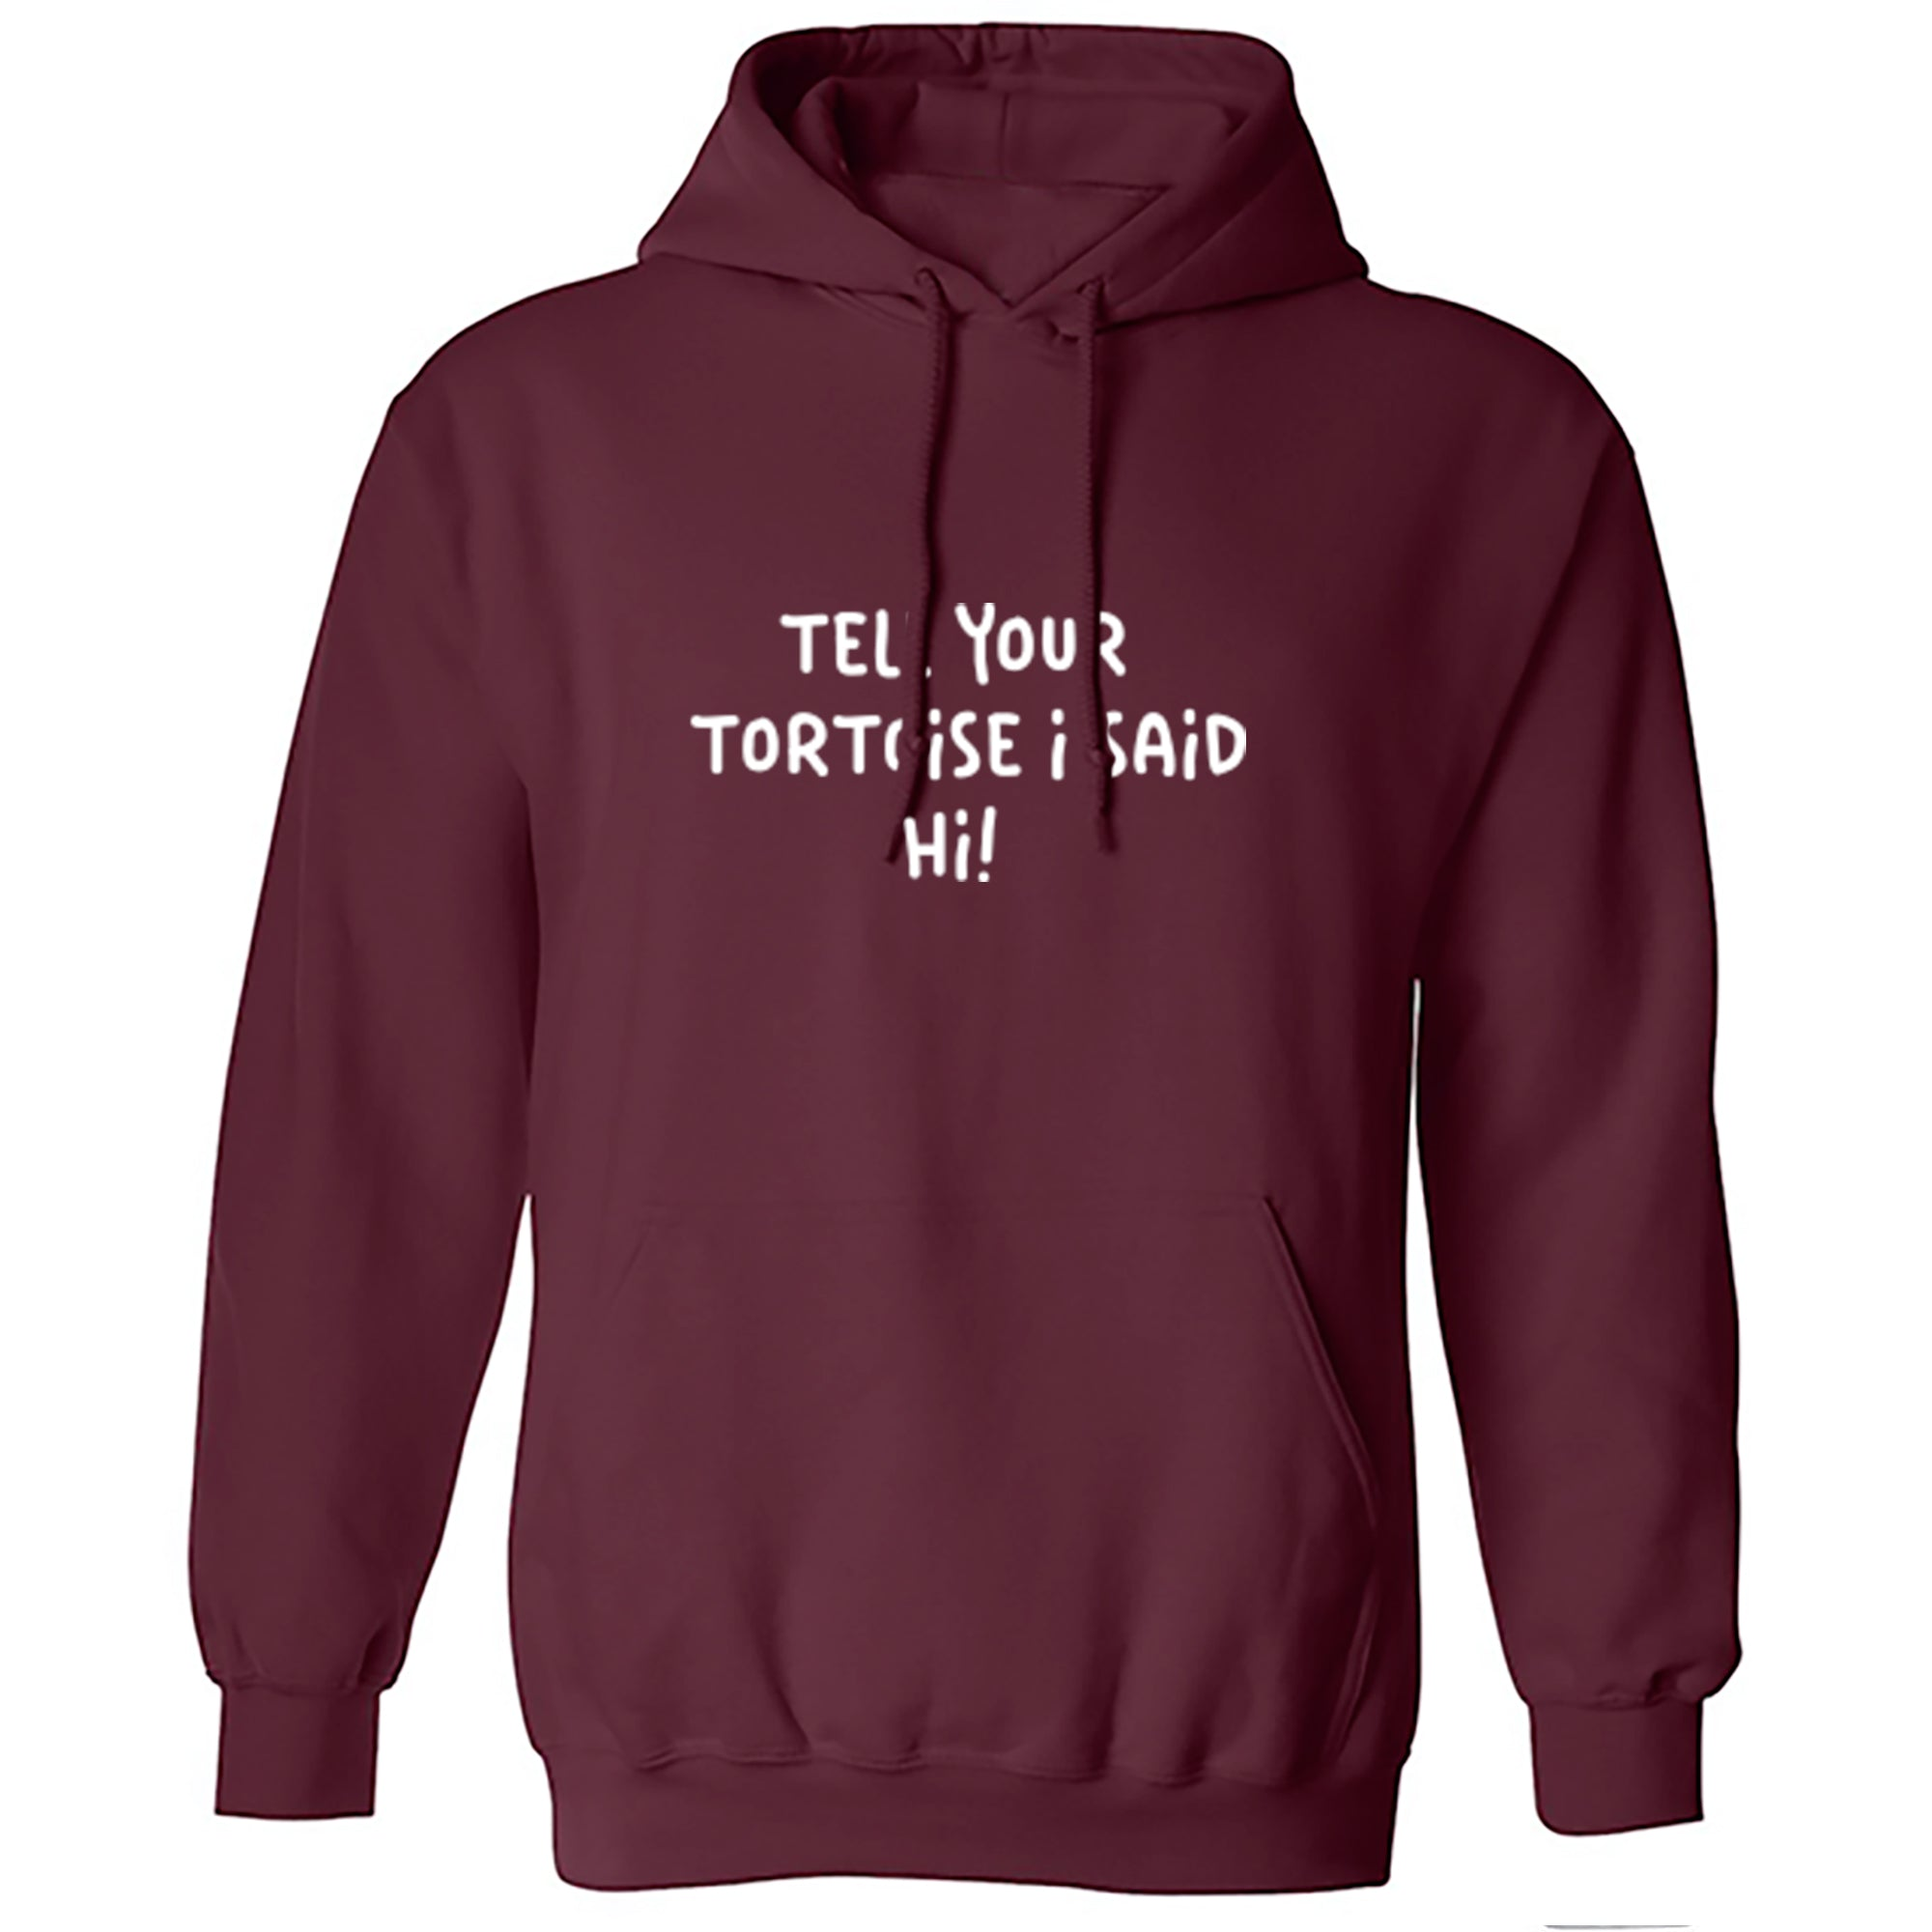 Tell Your Tortoise I Said Hi! Unisex Hoodie S1190 - Illustrated Identity Ltd.